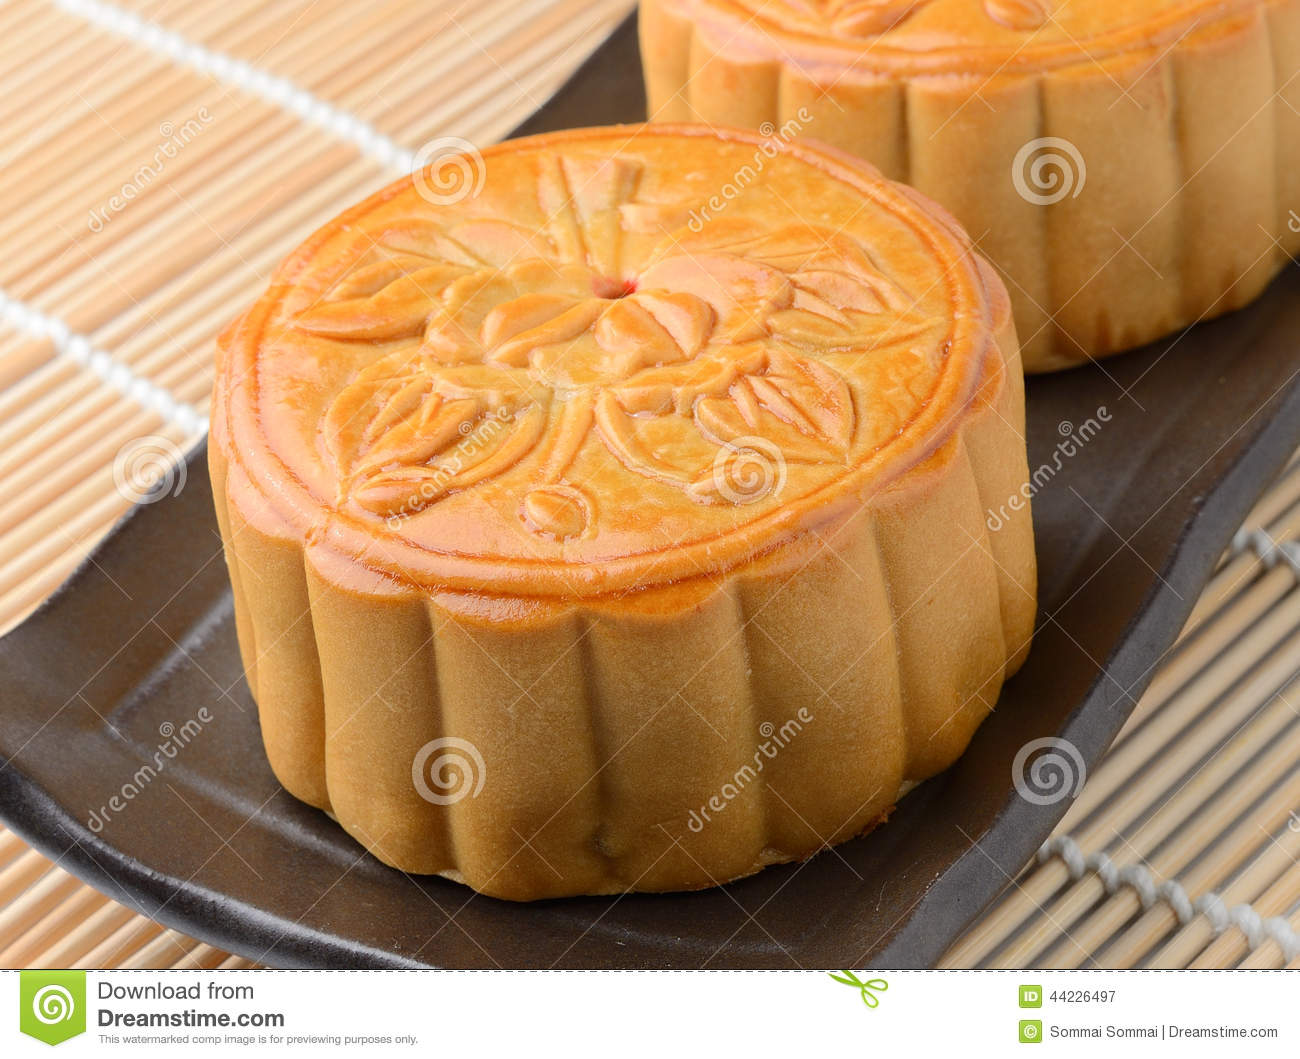 Moon Cake Stock Photo - Image: 44226497